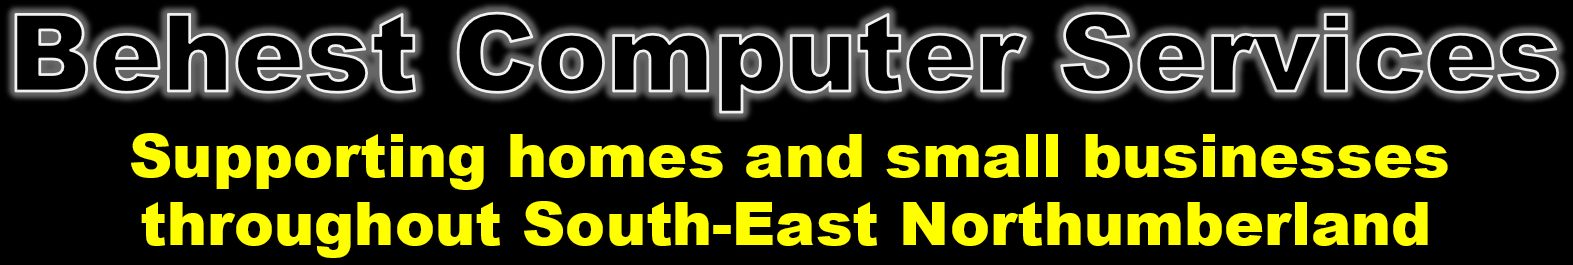 Behest Computer Services - Supporting homes, businesses and communities throughout Northumberland